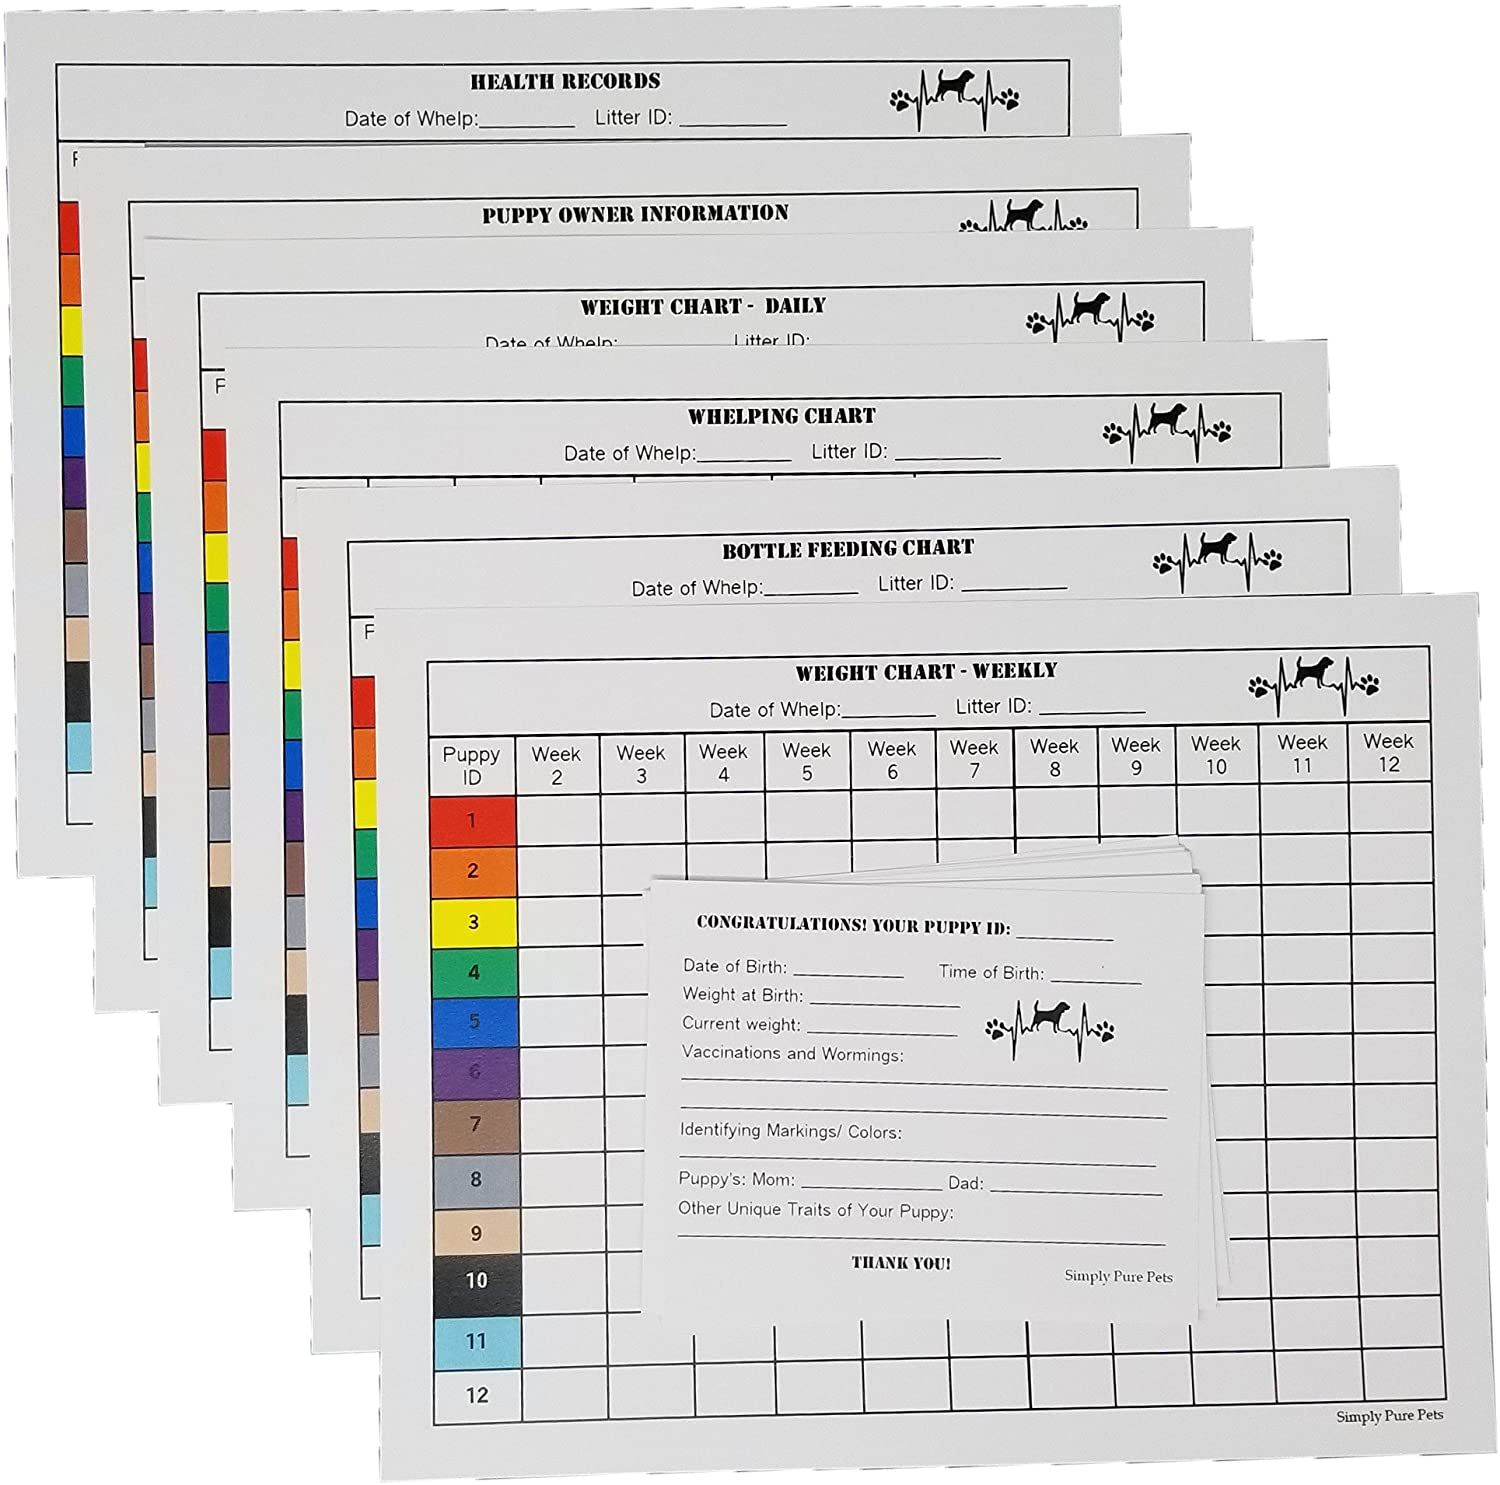 Two Arrows Puppy Whelping Charts for Record Keeping, Great for Breeders, Works Great for Recording and Tracking Data for Litters